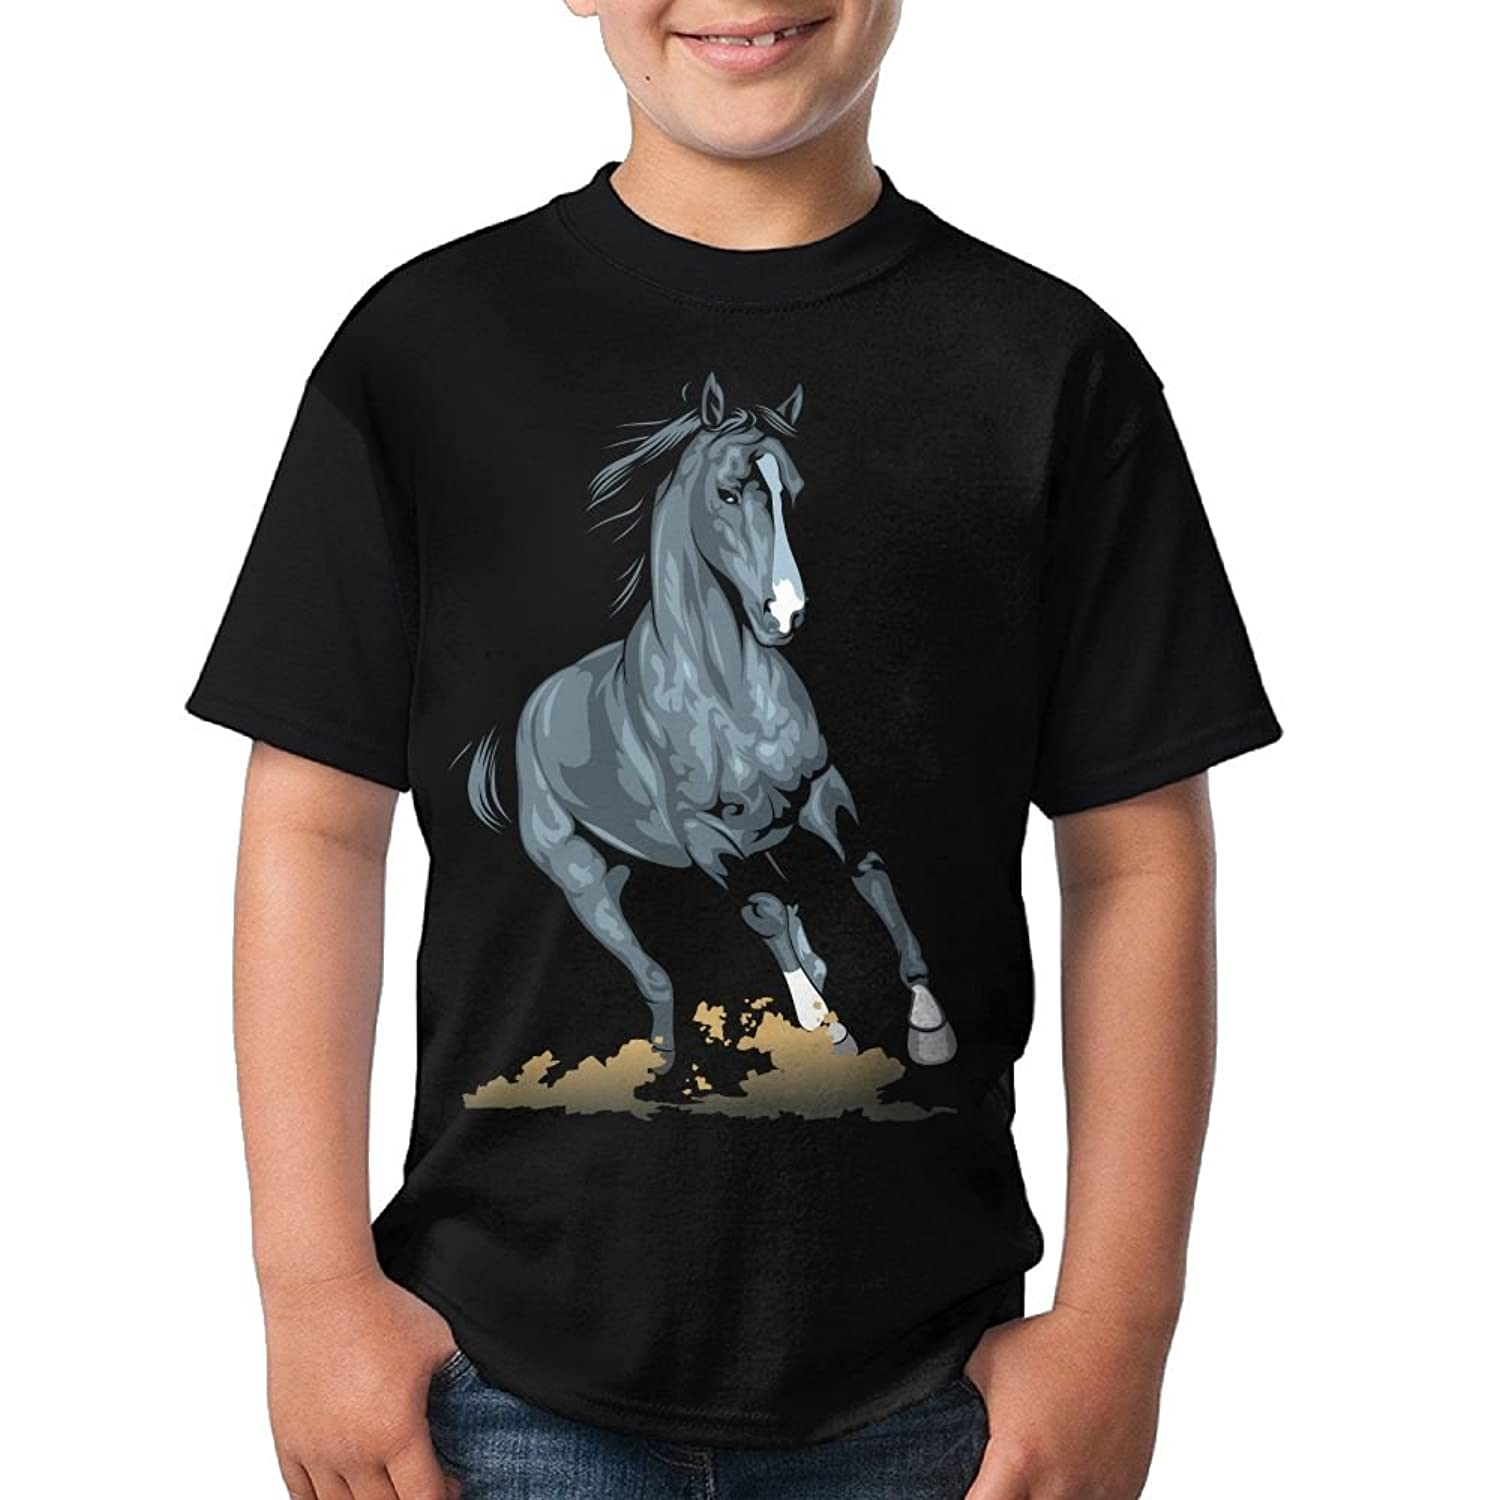 Hot CHENLY Unisex T-Shirt Casual Black Horse O-Neck Short Sleeve For Child - Black